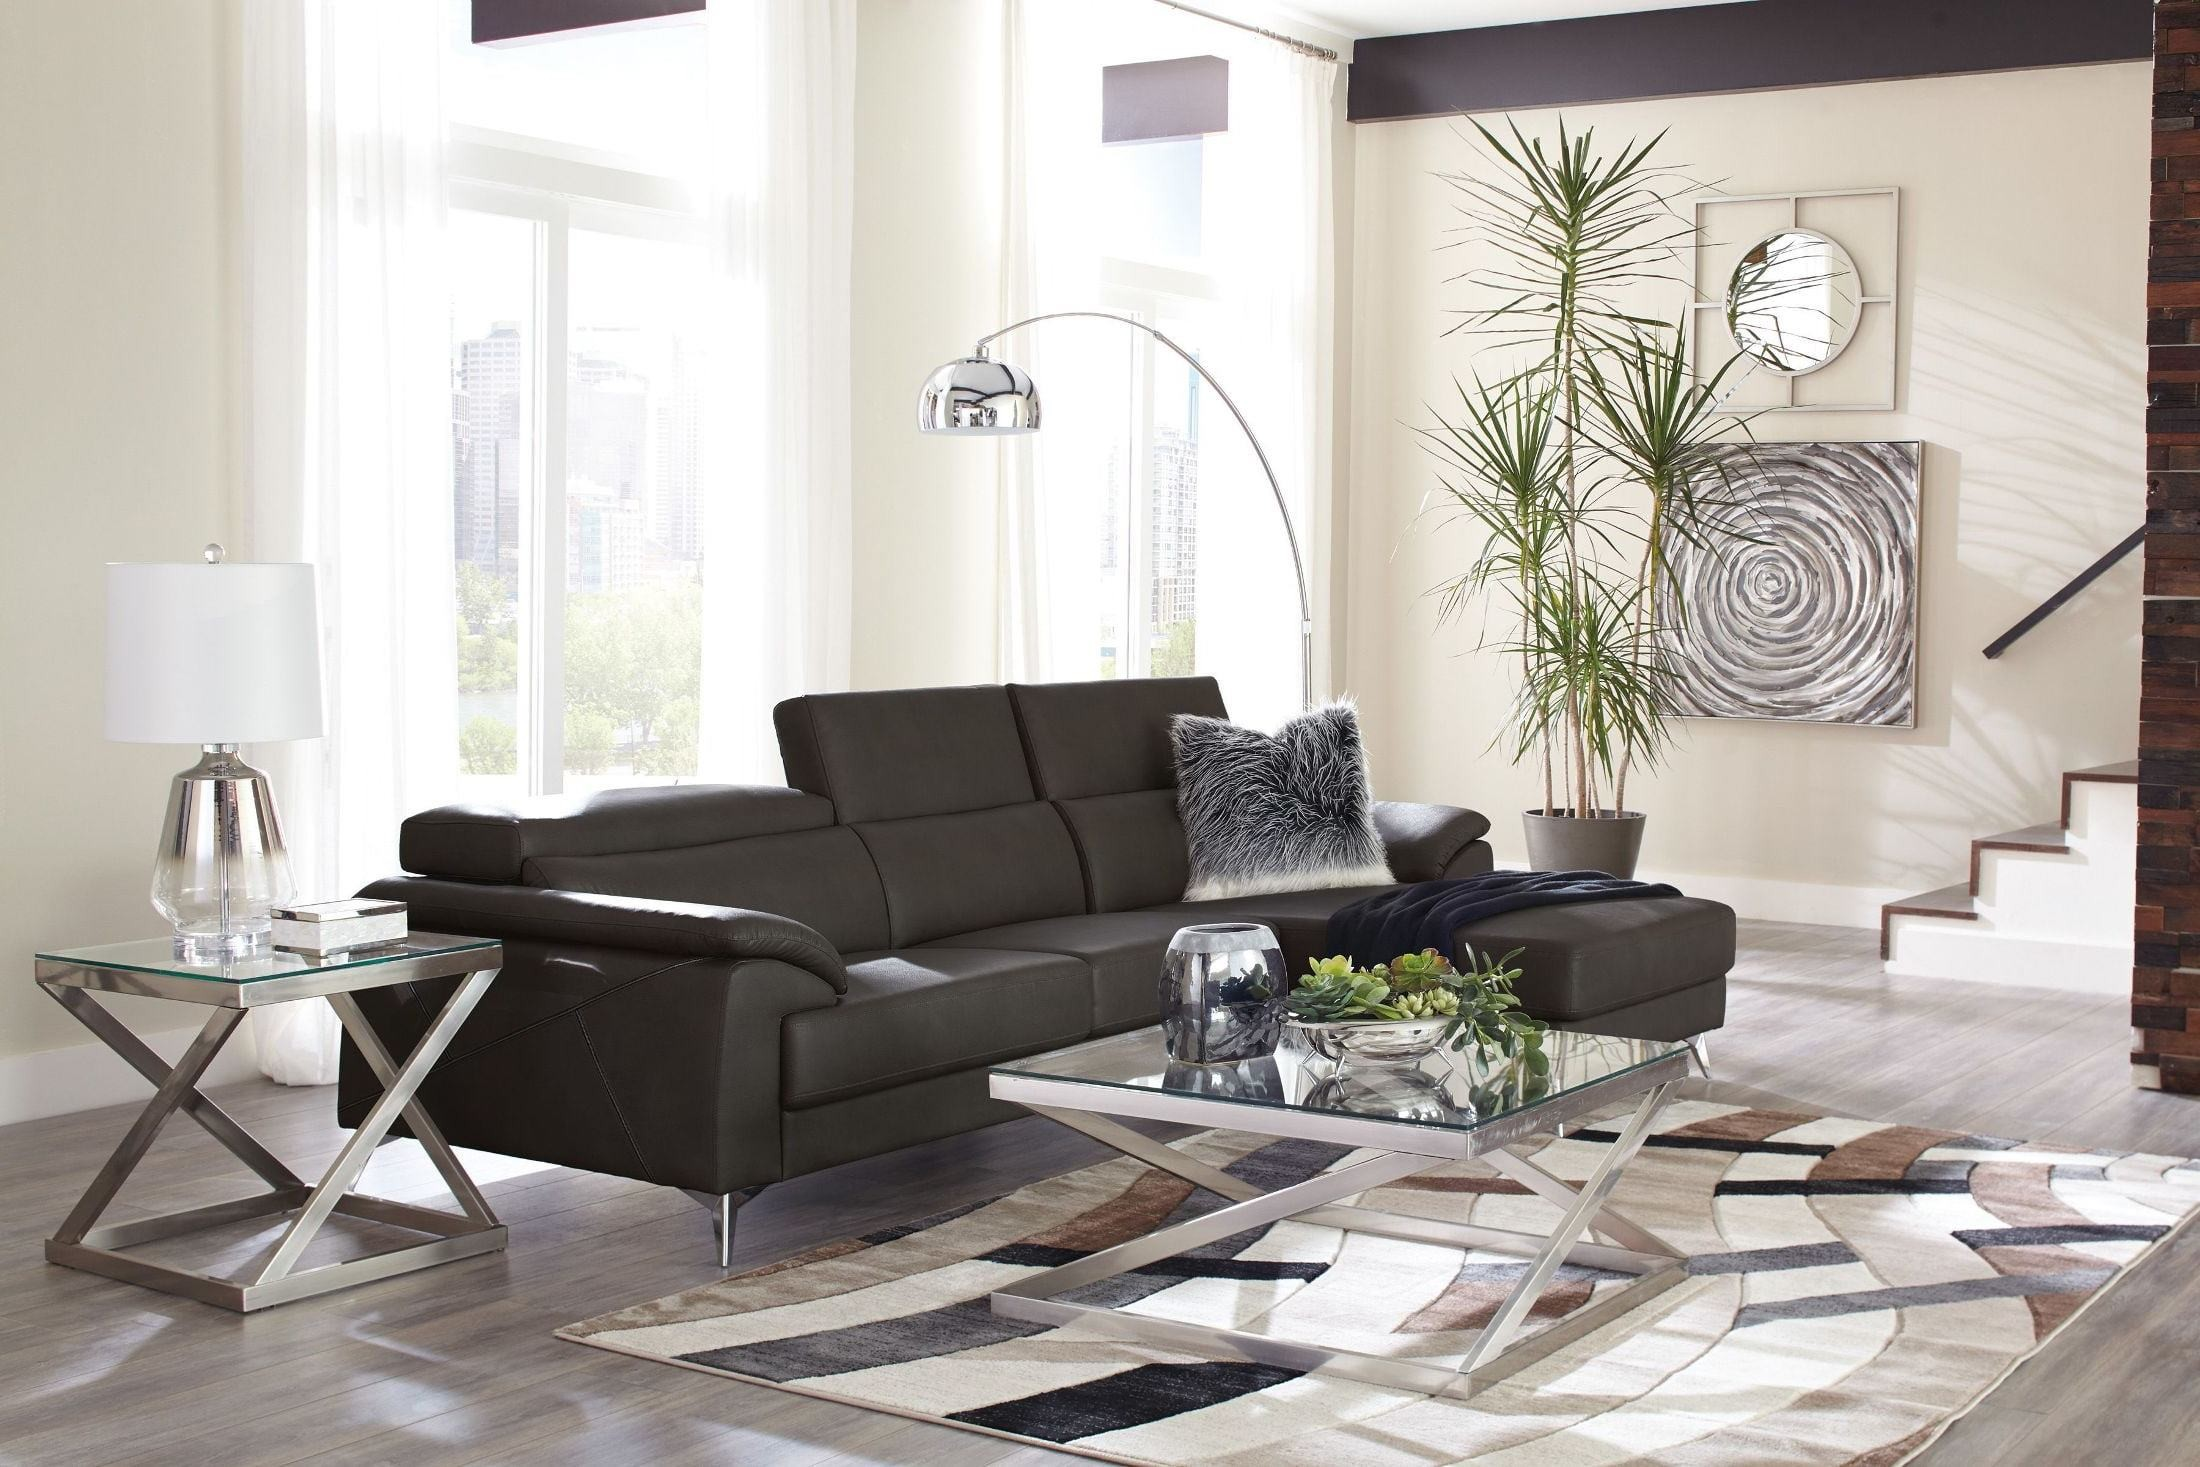 Tindell Gray 2 Piece Sectional Free Delivery Marjen Of